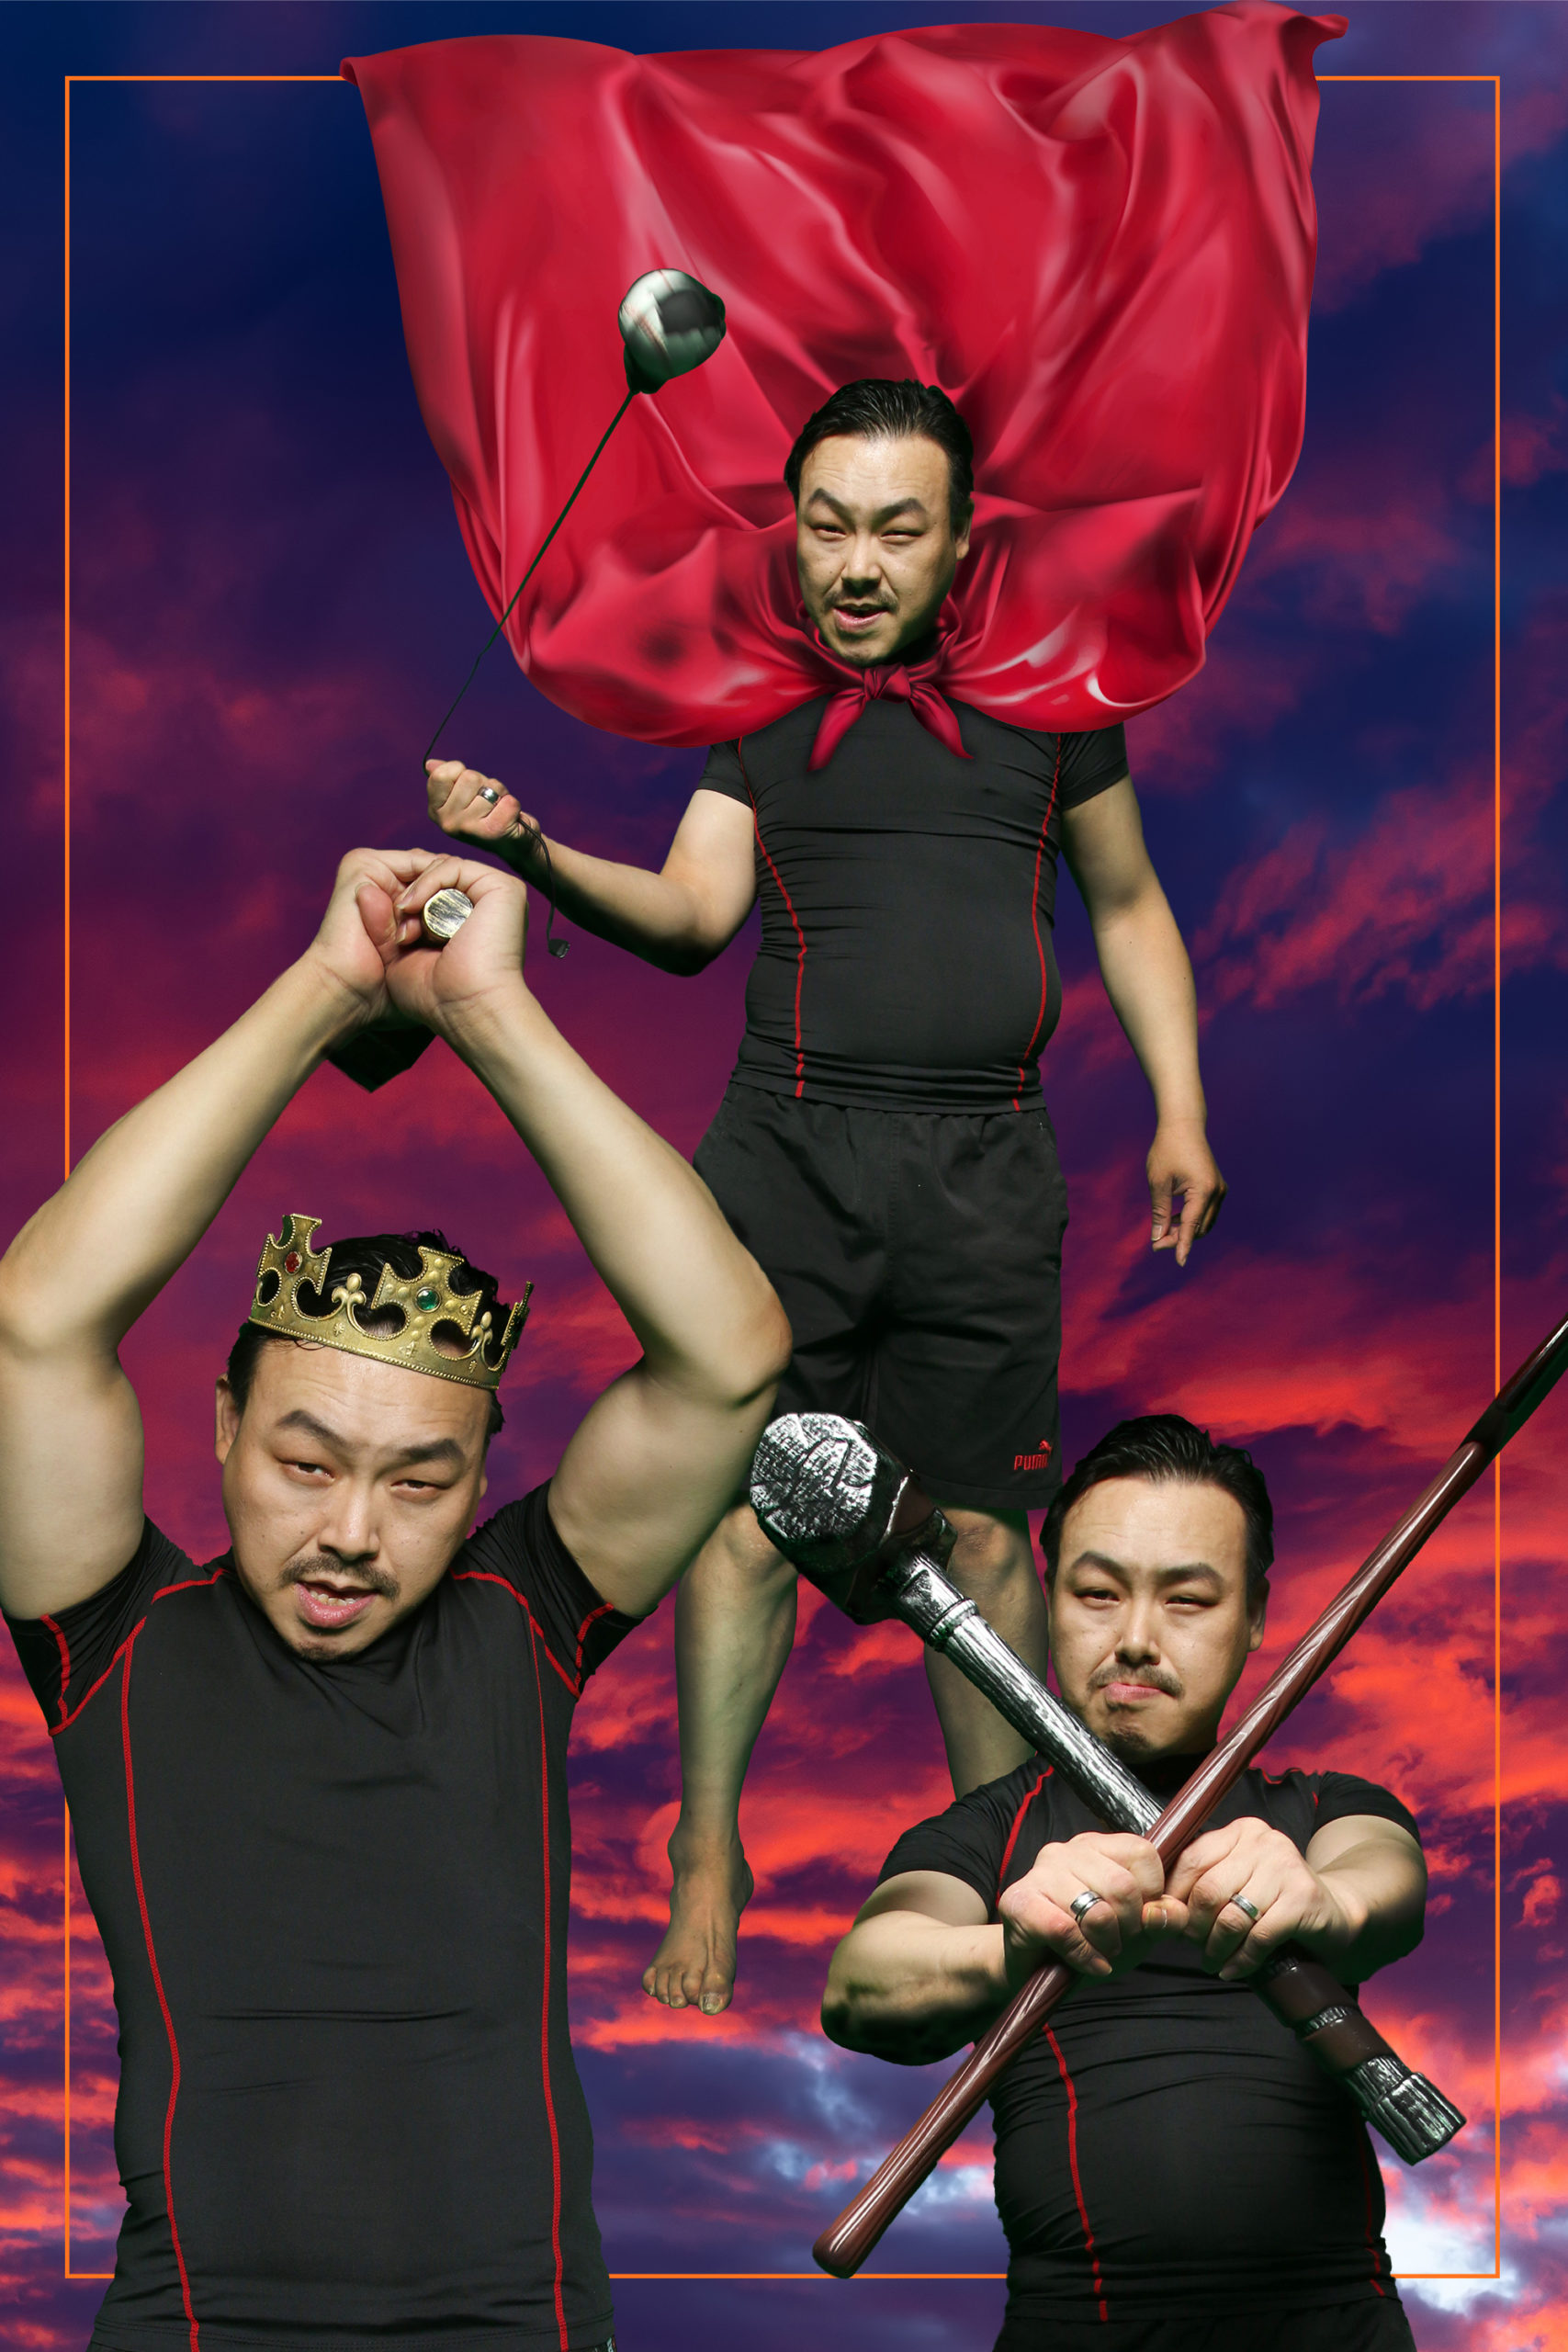 3 photos of Jongmin wearing a red cape and crown holding ancient weapons against a red and purple cloudy sky